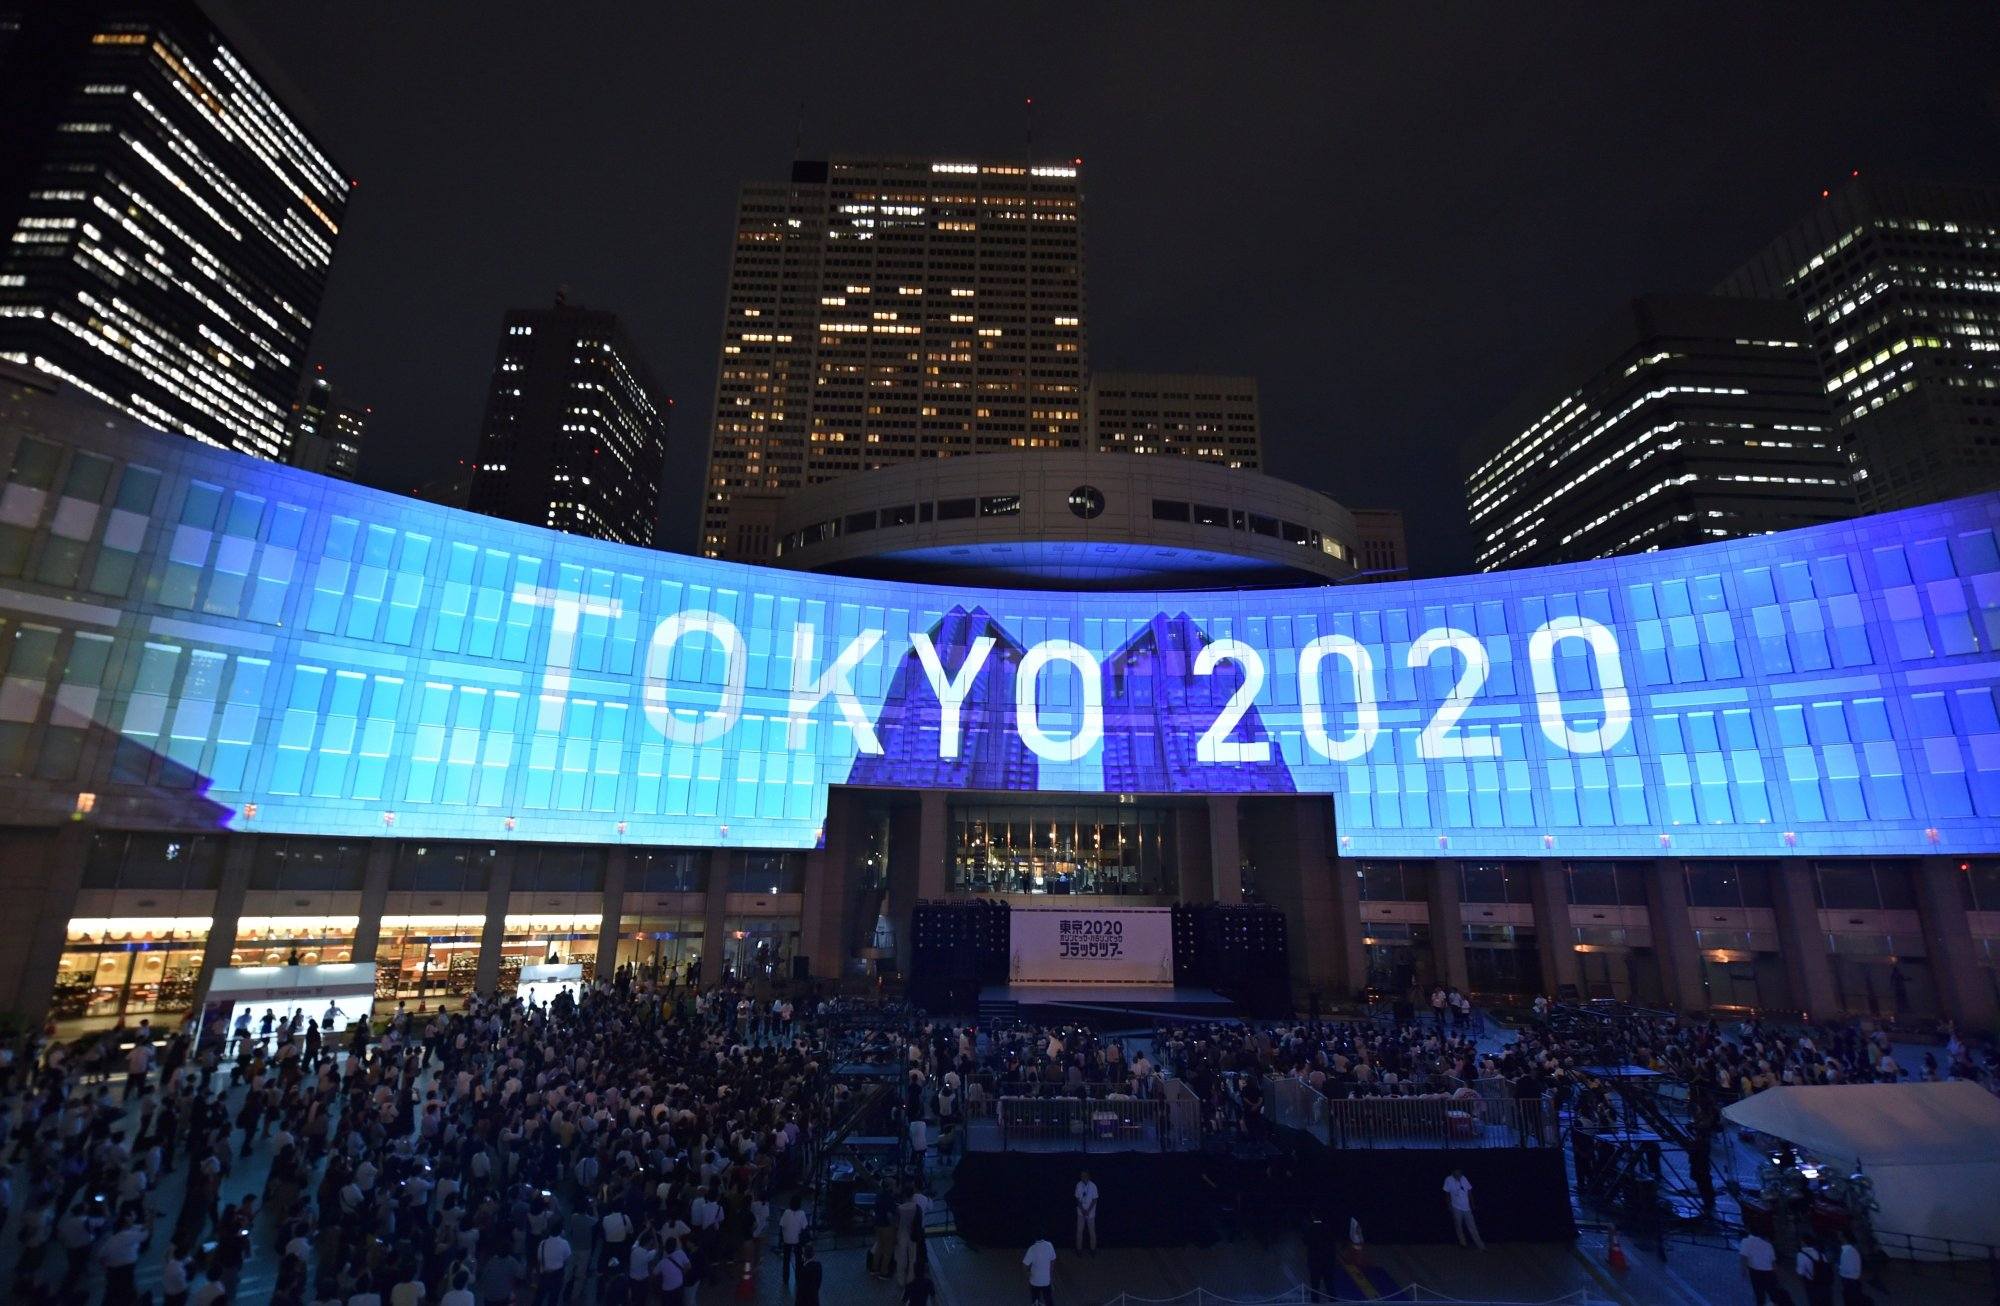 """A projection that reads """"Tokyo 2020"""" is seen during a ceremony marking three years to go before the start of the Tokyo 2020 Olympic games at the Tokyo Metropolitan Assembly Building on July 24, 2017. (Credit: KAZUHIRO NOGI/AFP via Getty Images)"""